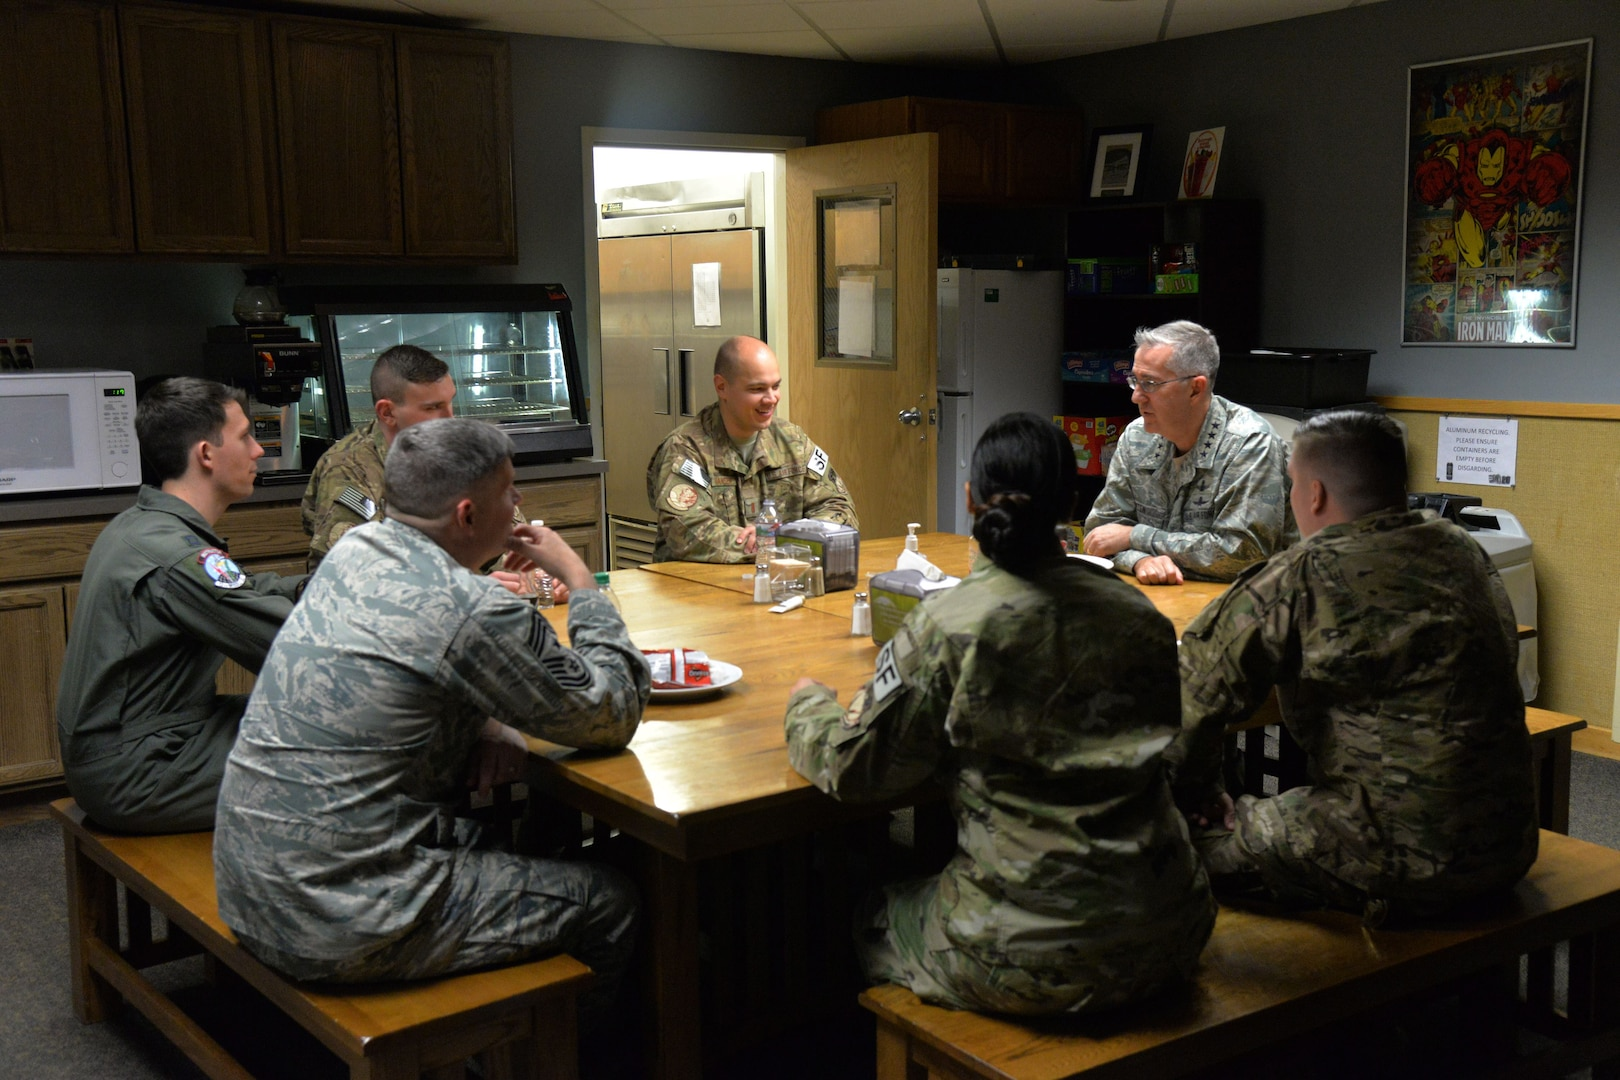 U.S. Air Force Gen. John Hyten, commander of U.S. Strategic Command (USSTRATCOM), and Chief Master Sgt. Patrick McMahon, senior enlisted leader of USSTRATCOM, speak with airmen at a missile alert facility near Simms, Mont., Jan. 16, 2018.